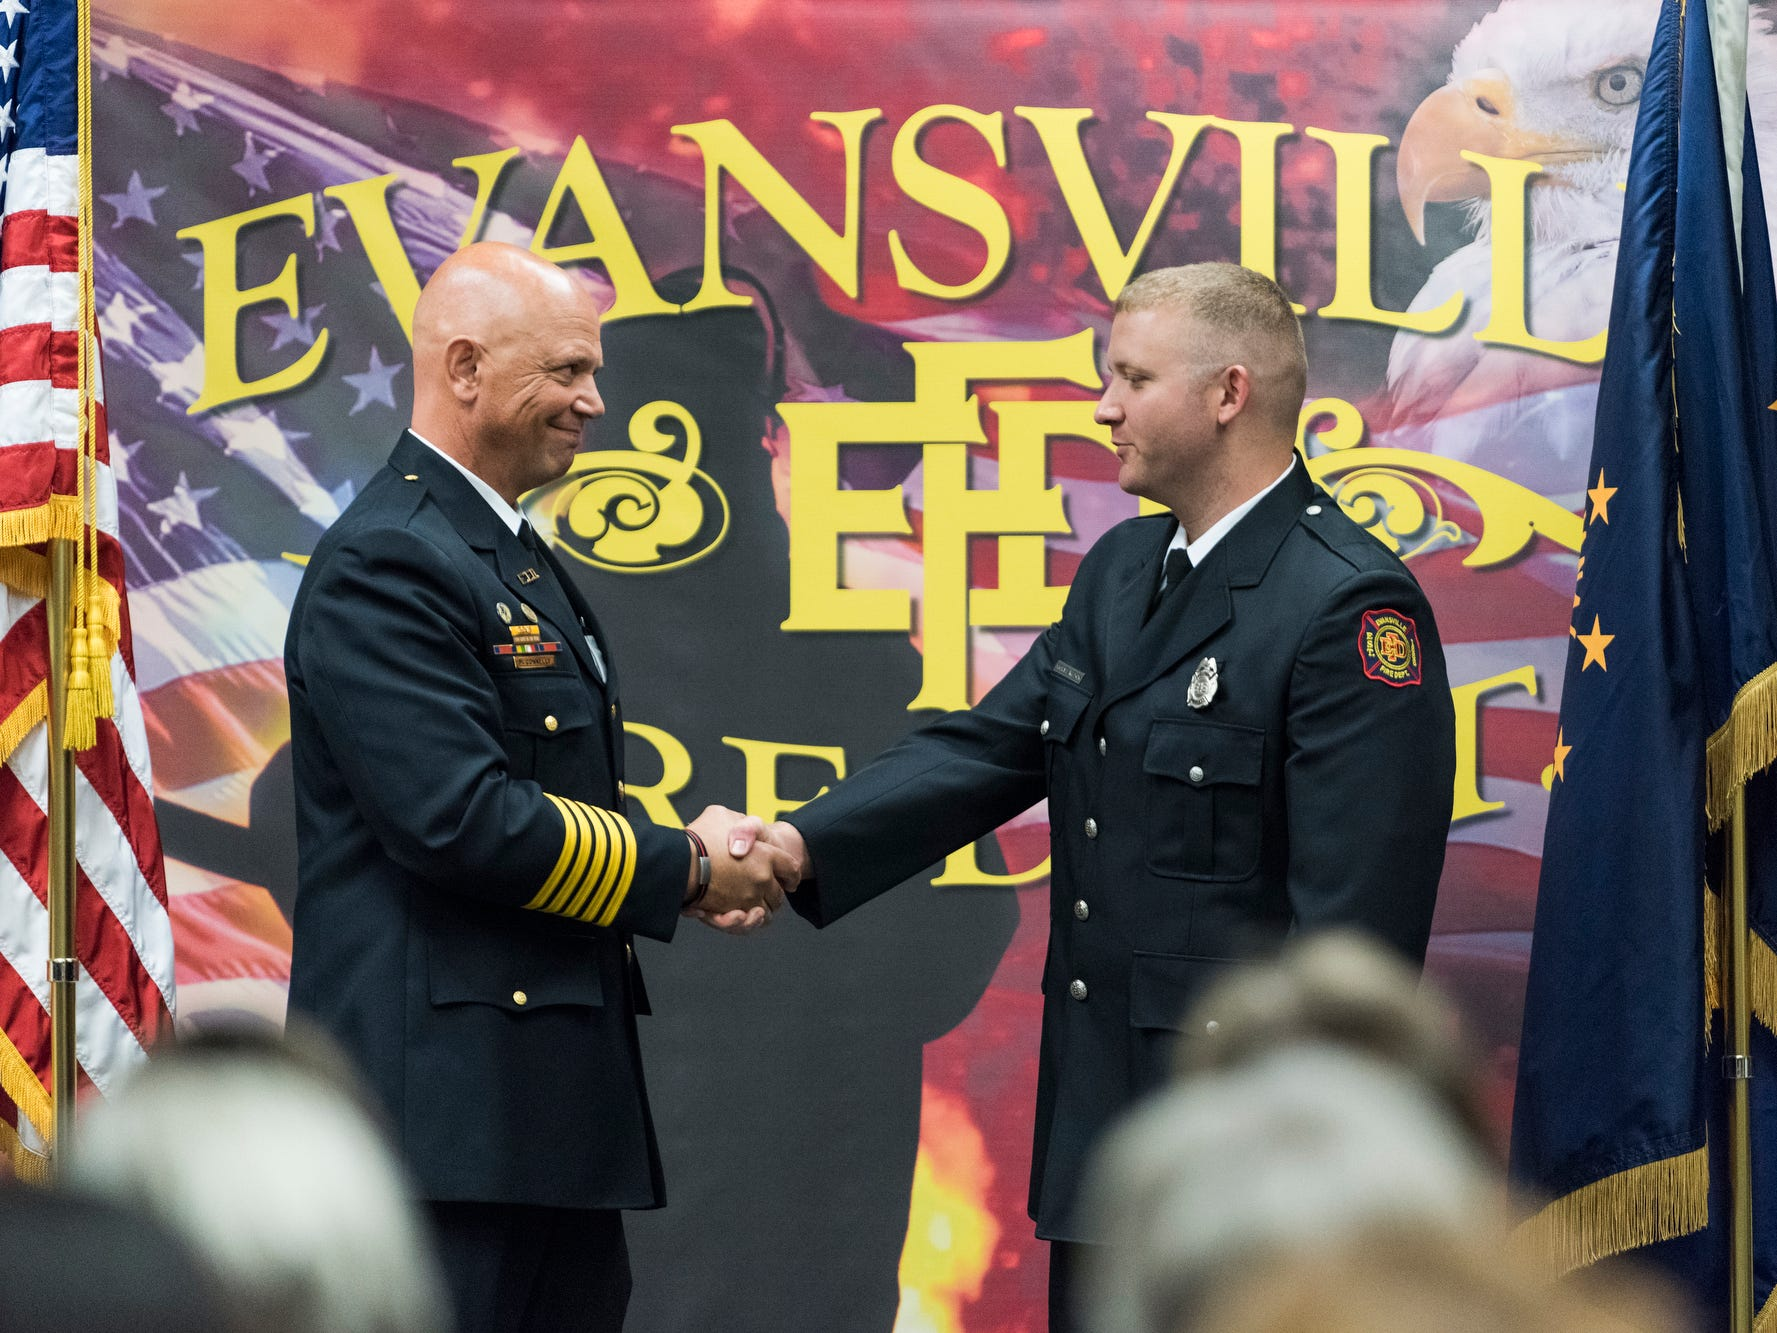 Evansville Fire Chief Charles Connolly, left, congratulates new probationary firefighter Michael Wilson, right, during his graduation ceremony at the American Red Cross Headquarters in Evansville, Ind., Friday, Oct. 12, 2018.